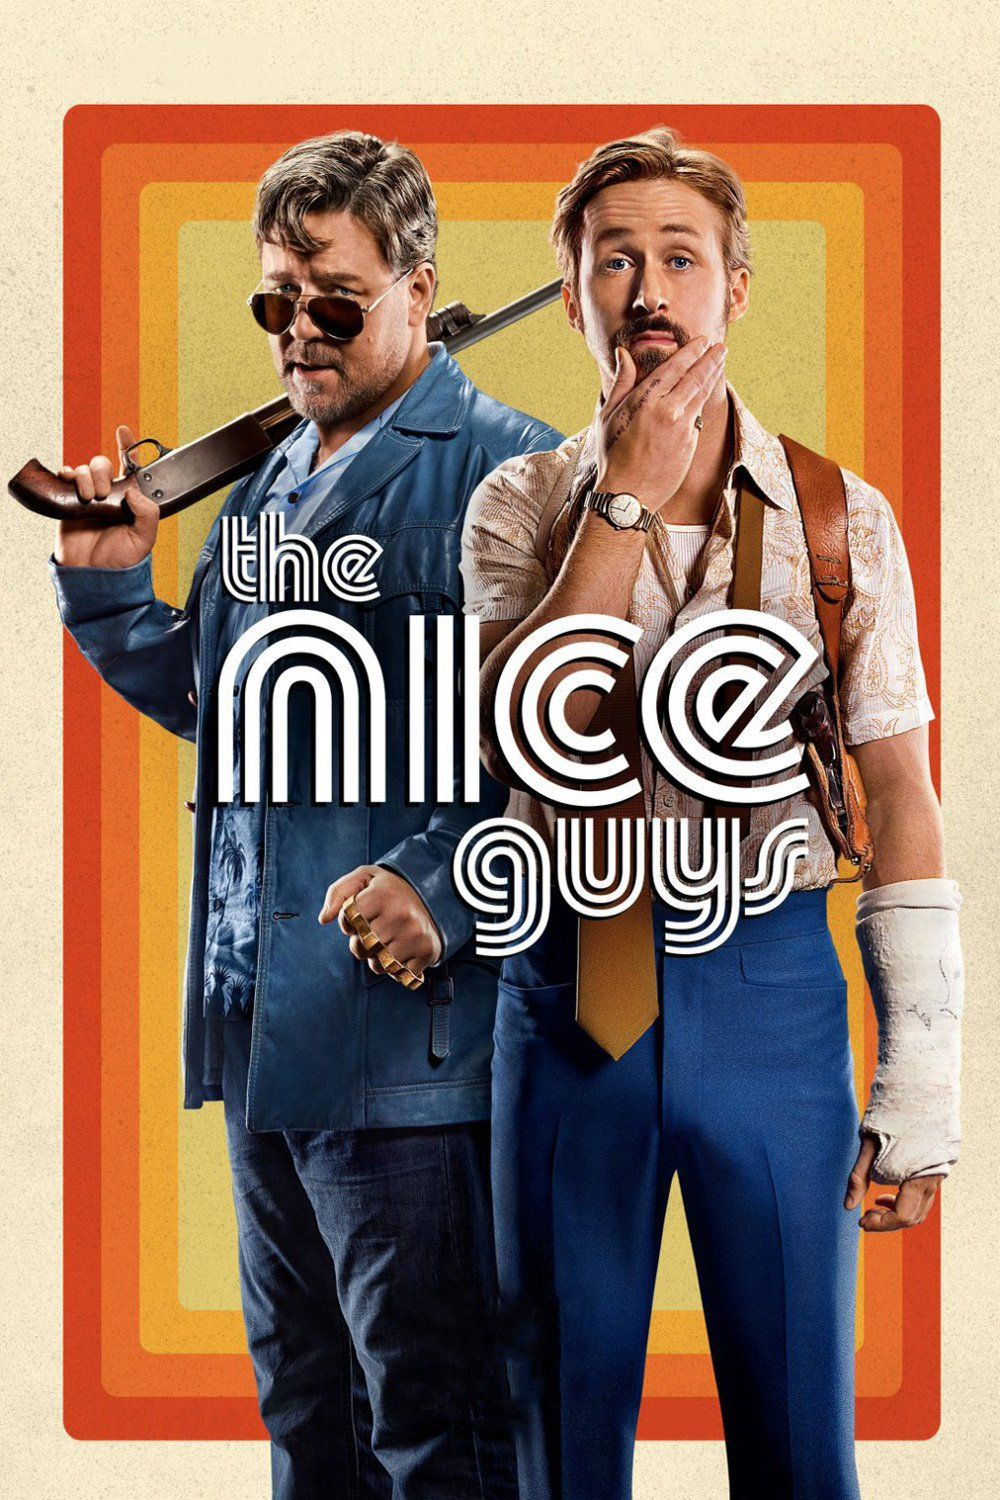 Watch The Nice Guys full HD movie online - #Hd movies, #Tv series